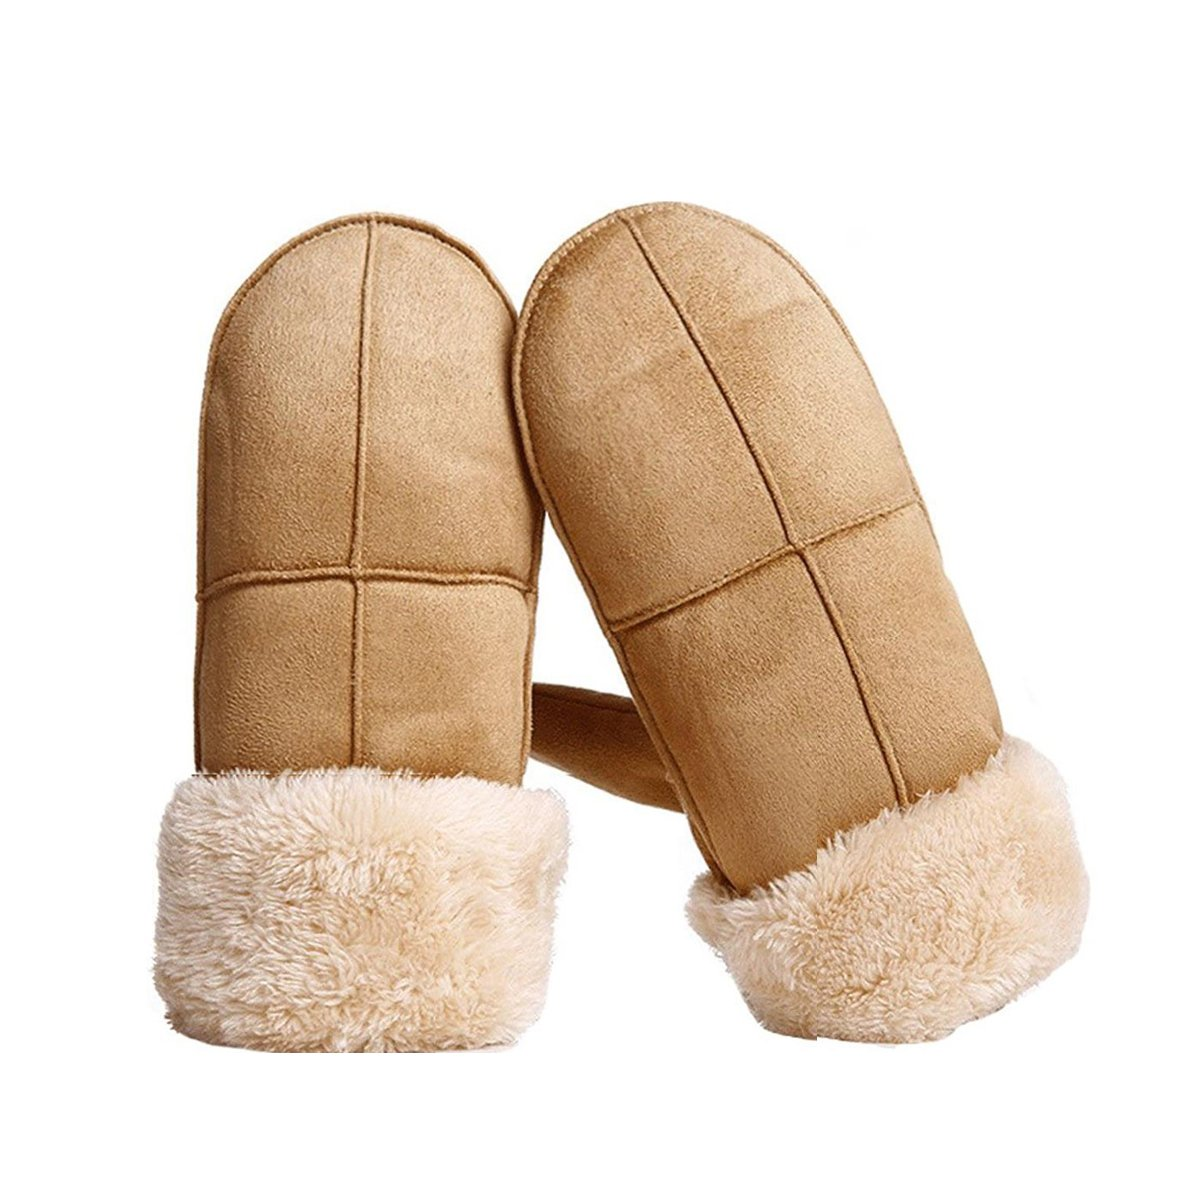 OblingミトンレディースThick Warm Winter Gloves with Plush Cuff and Longロープ B078W7RRP2 カーキ